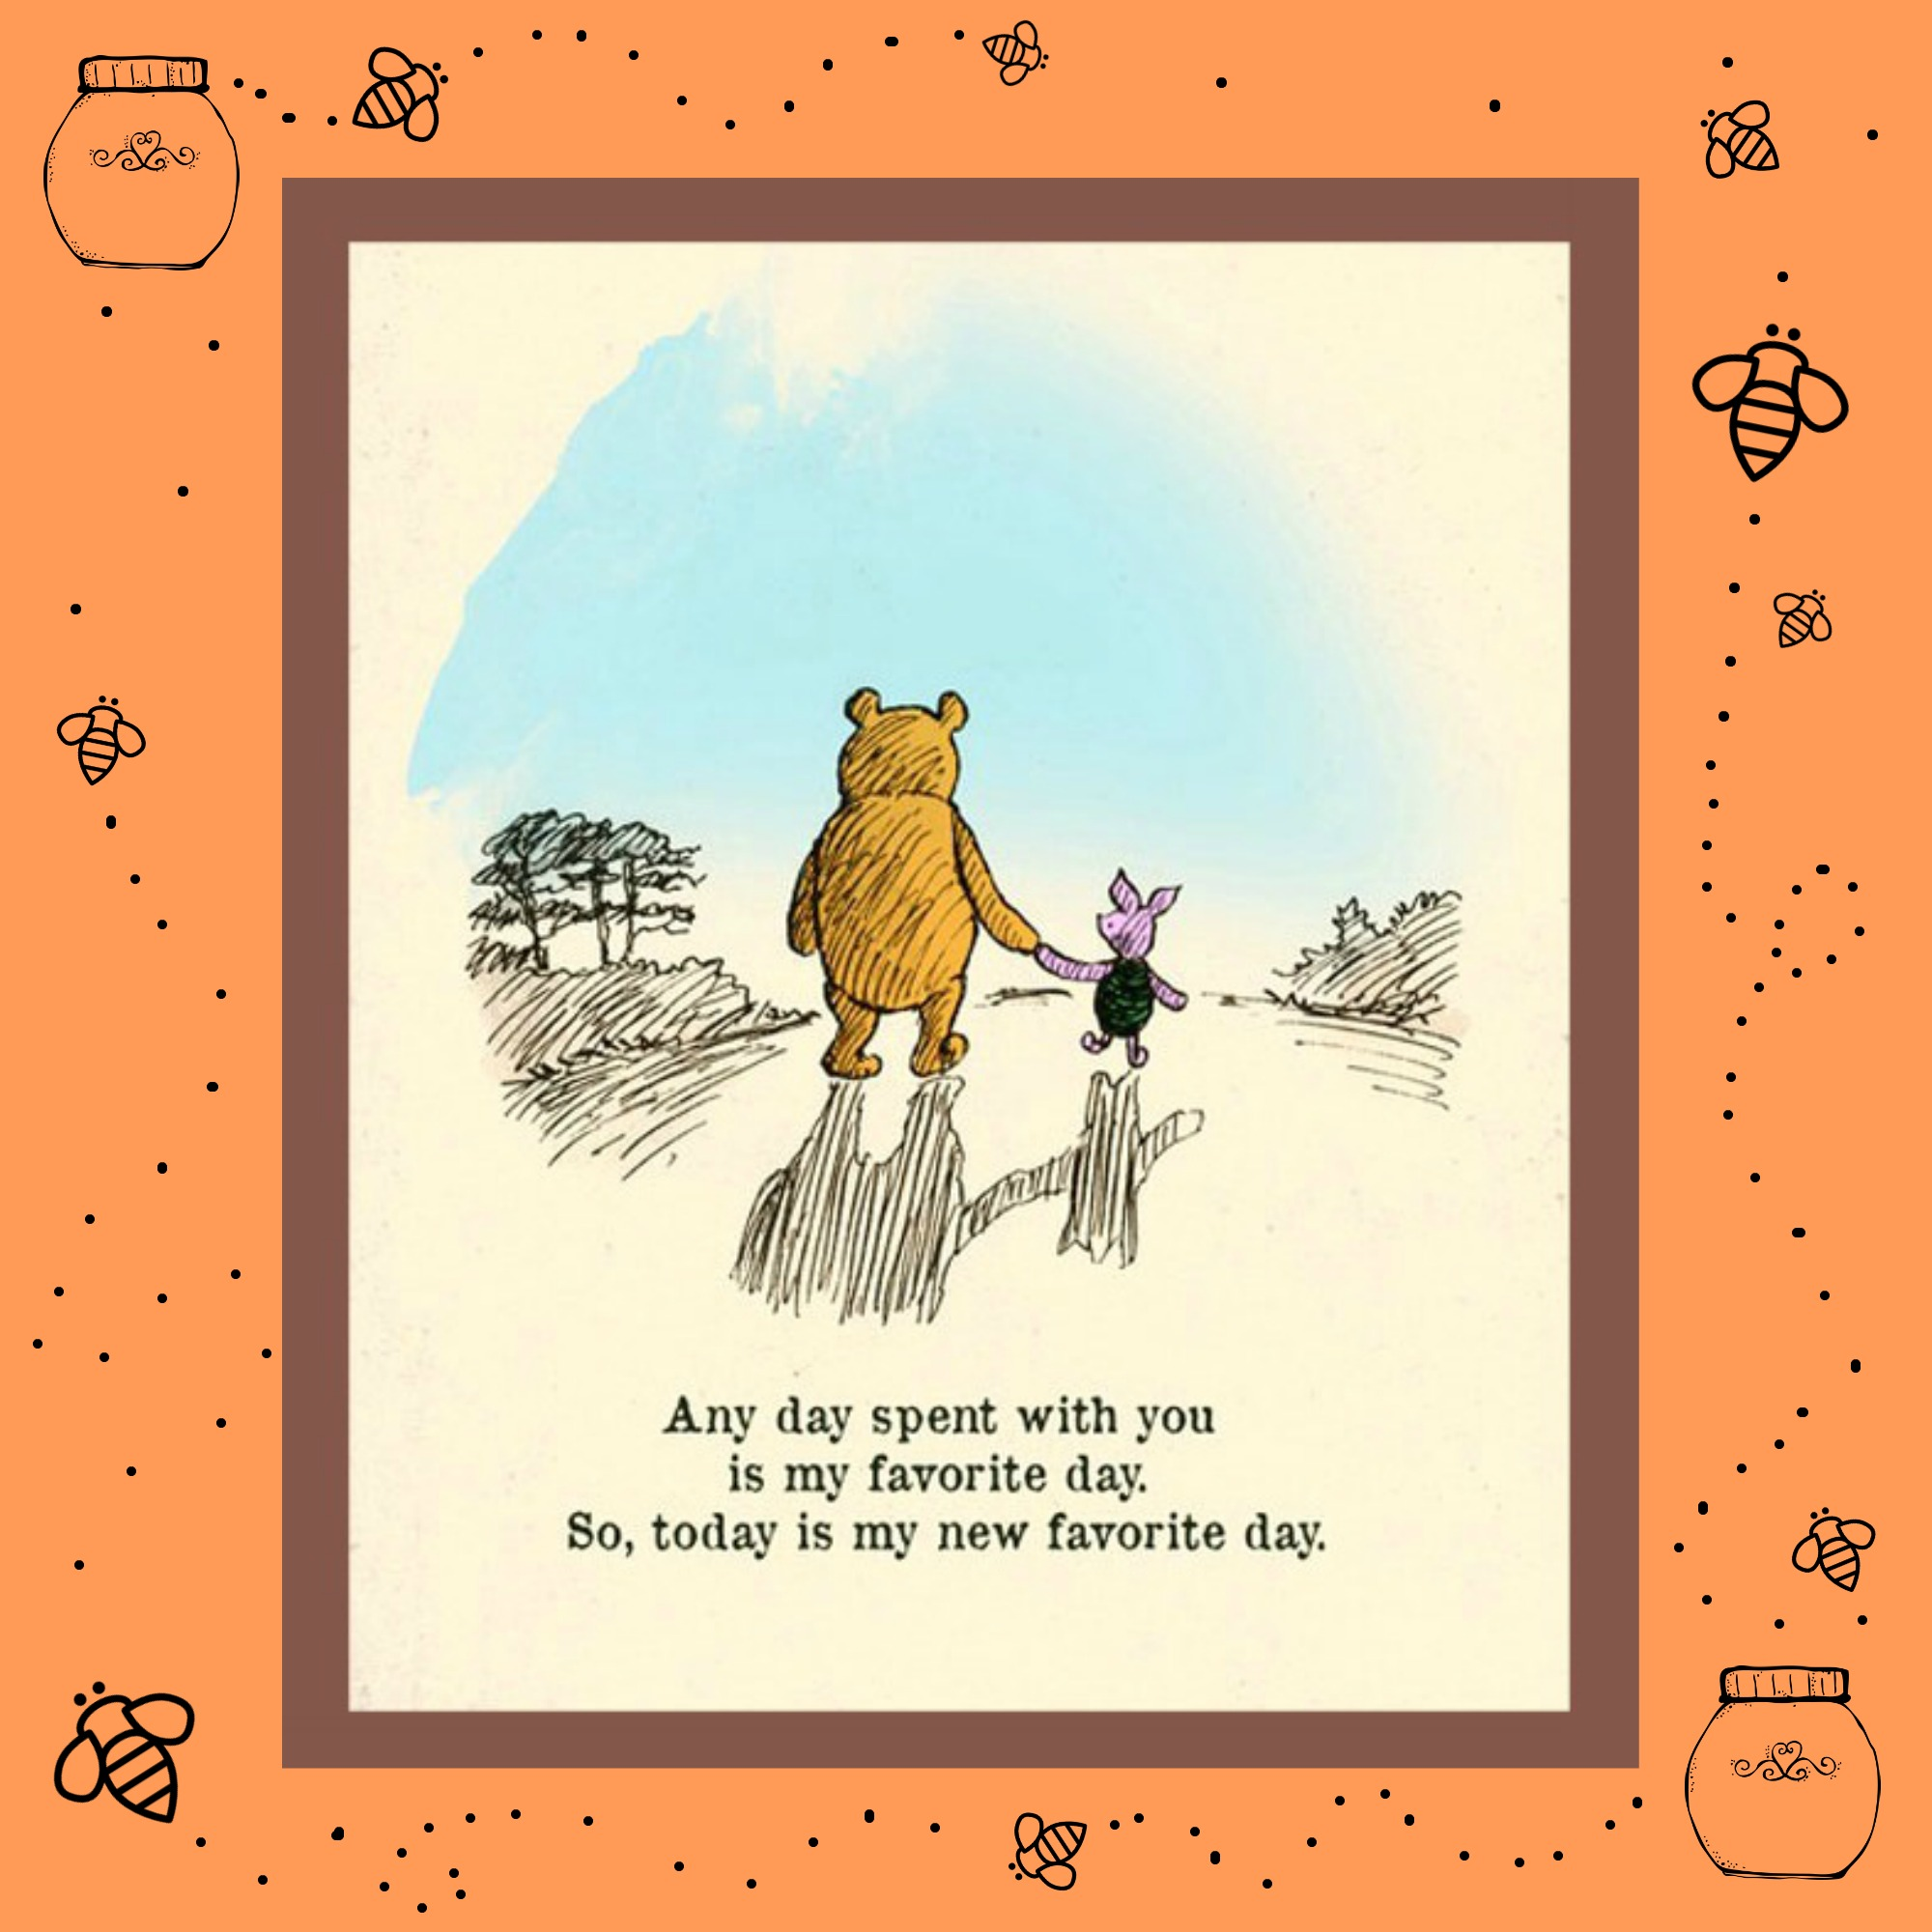 winnie the pooh and piglet relationship quiz